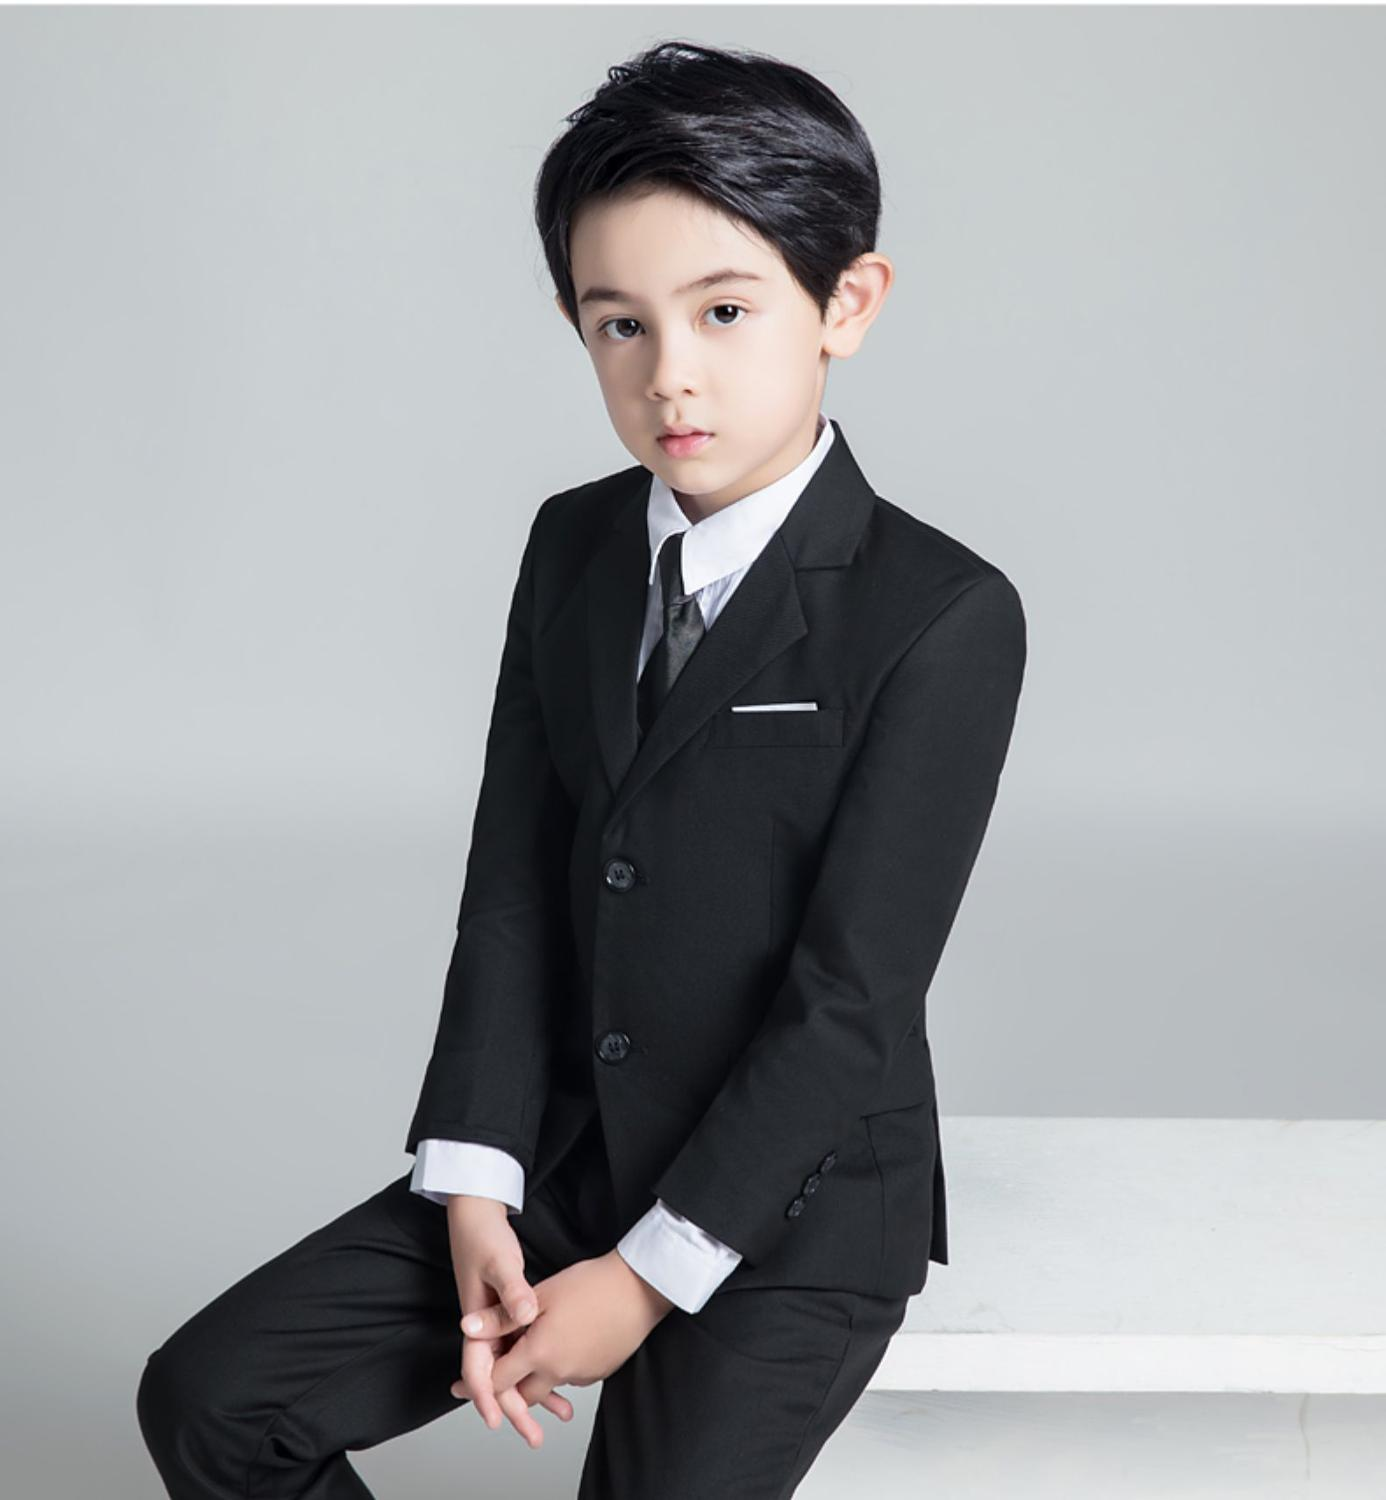 Suits, For, Wedding, Suit, Formal, Boy